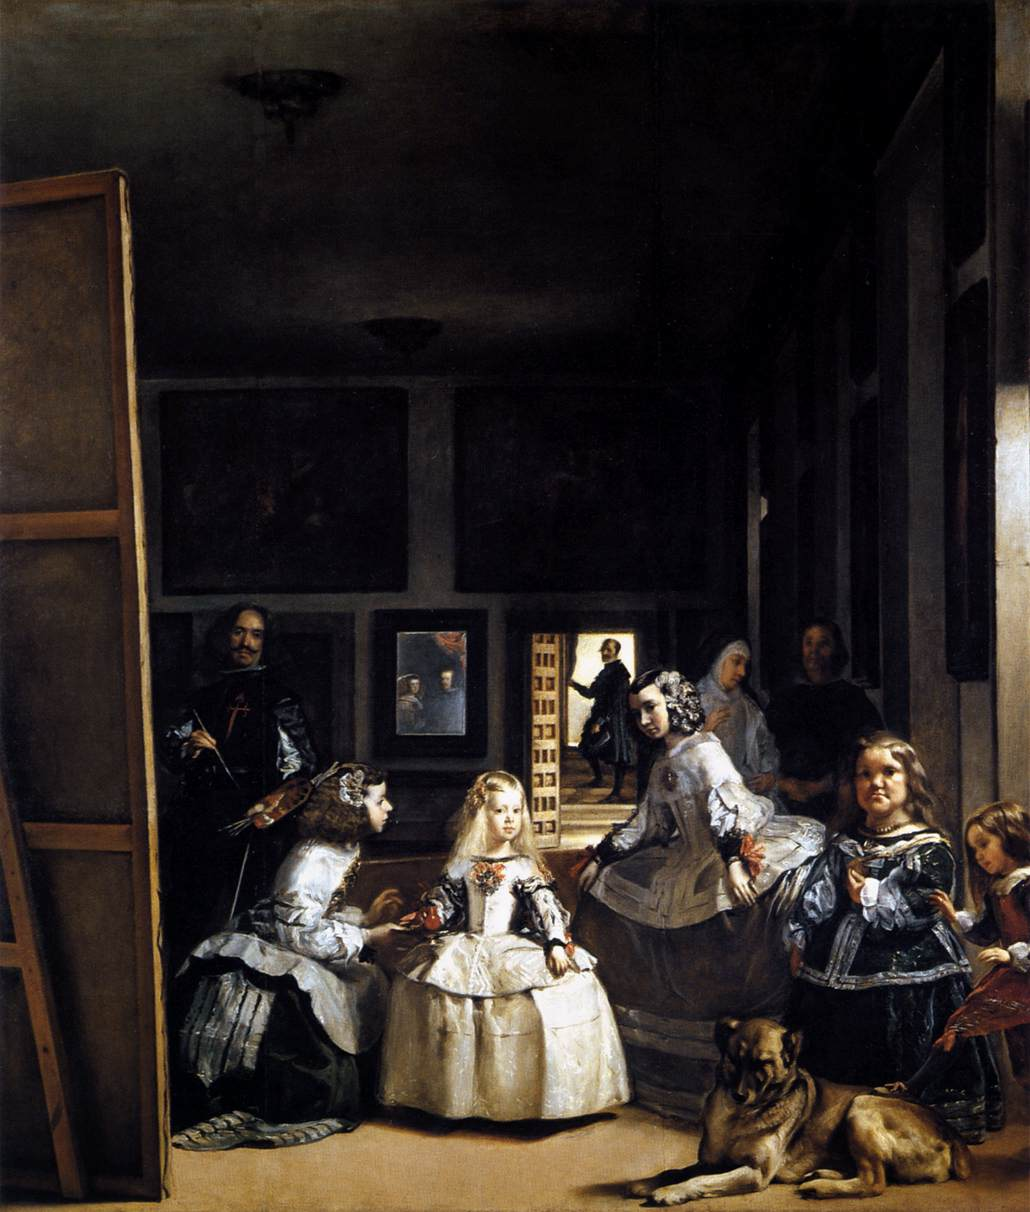 Diego Velazquez, Las Meninas or The Family of Philip IV 1656-57